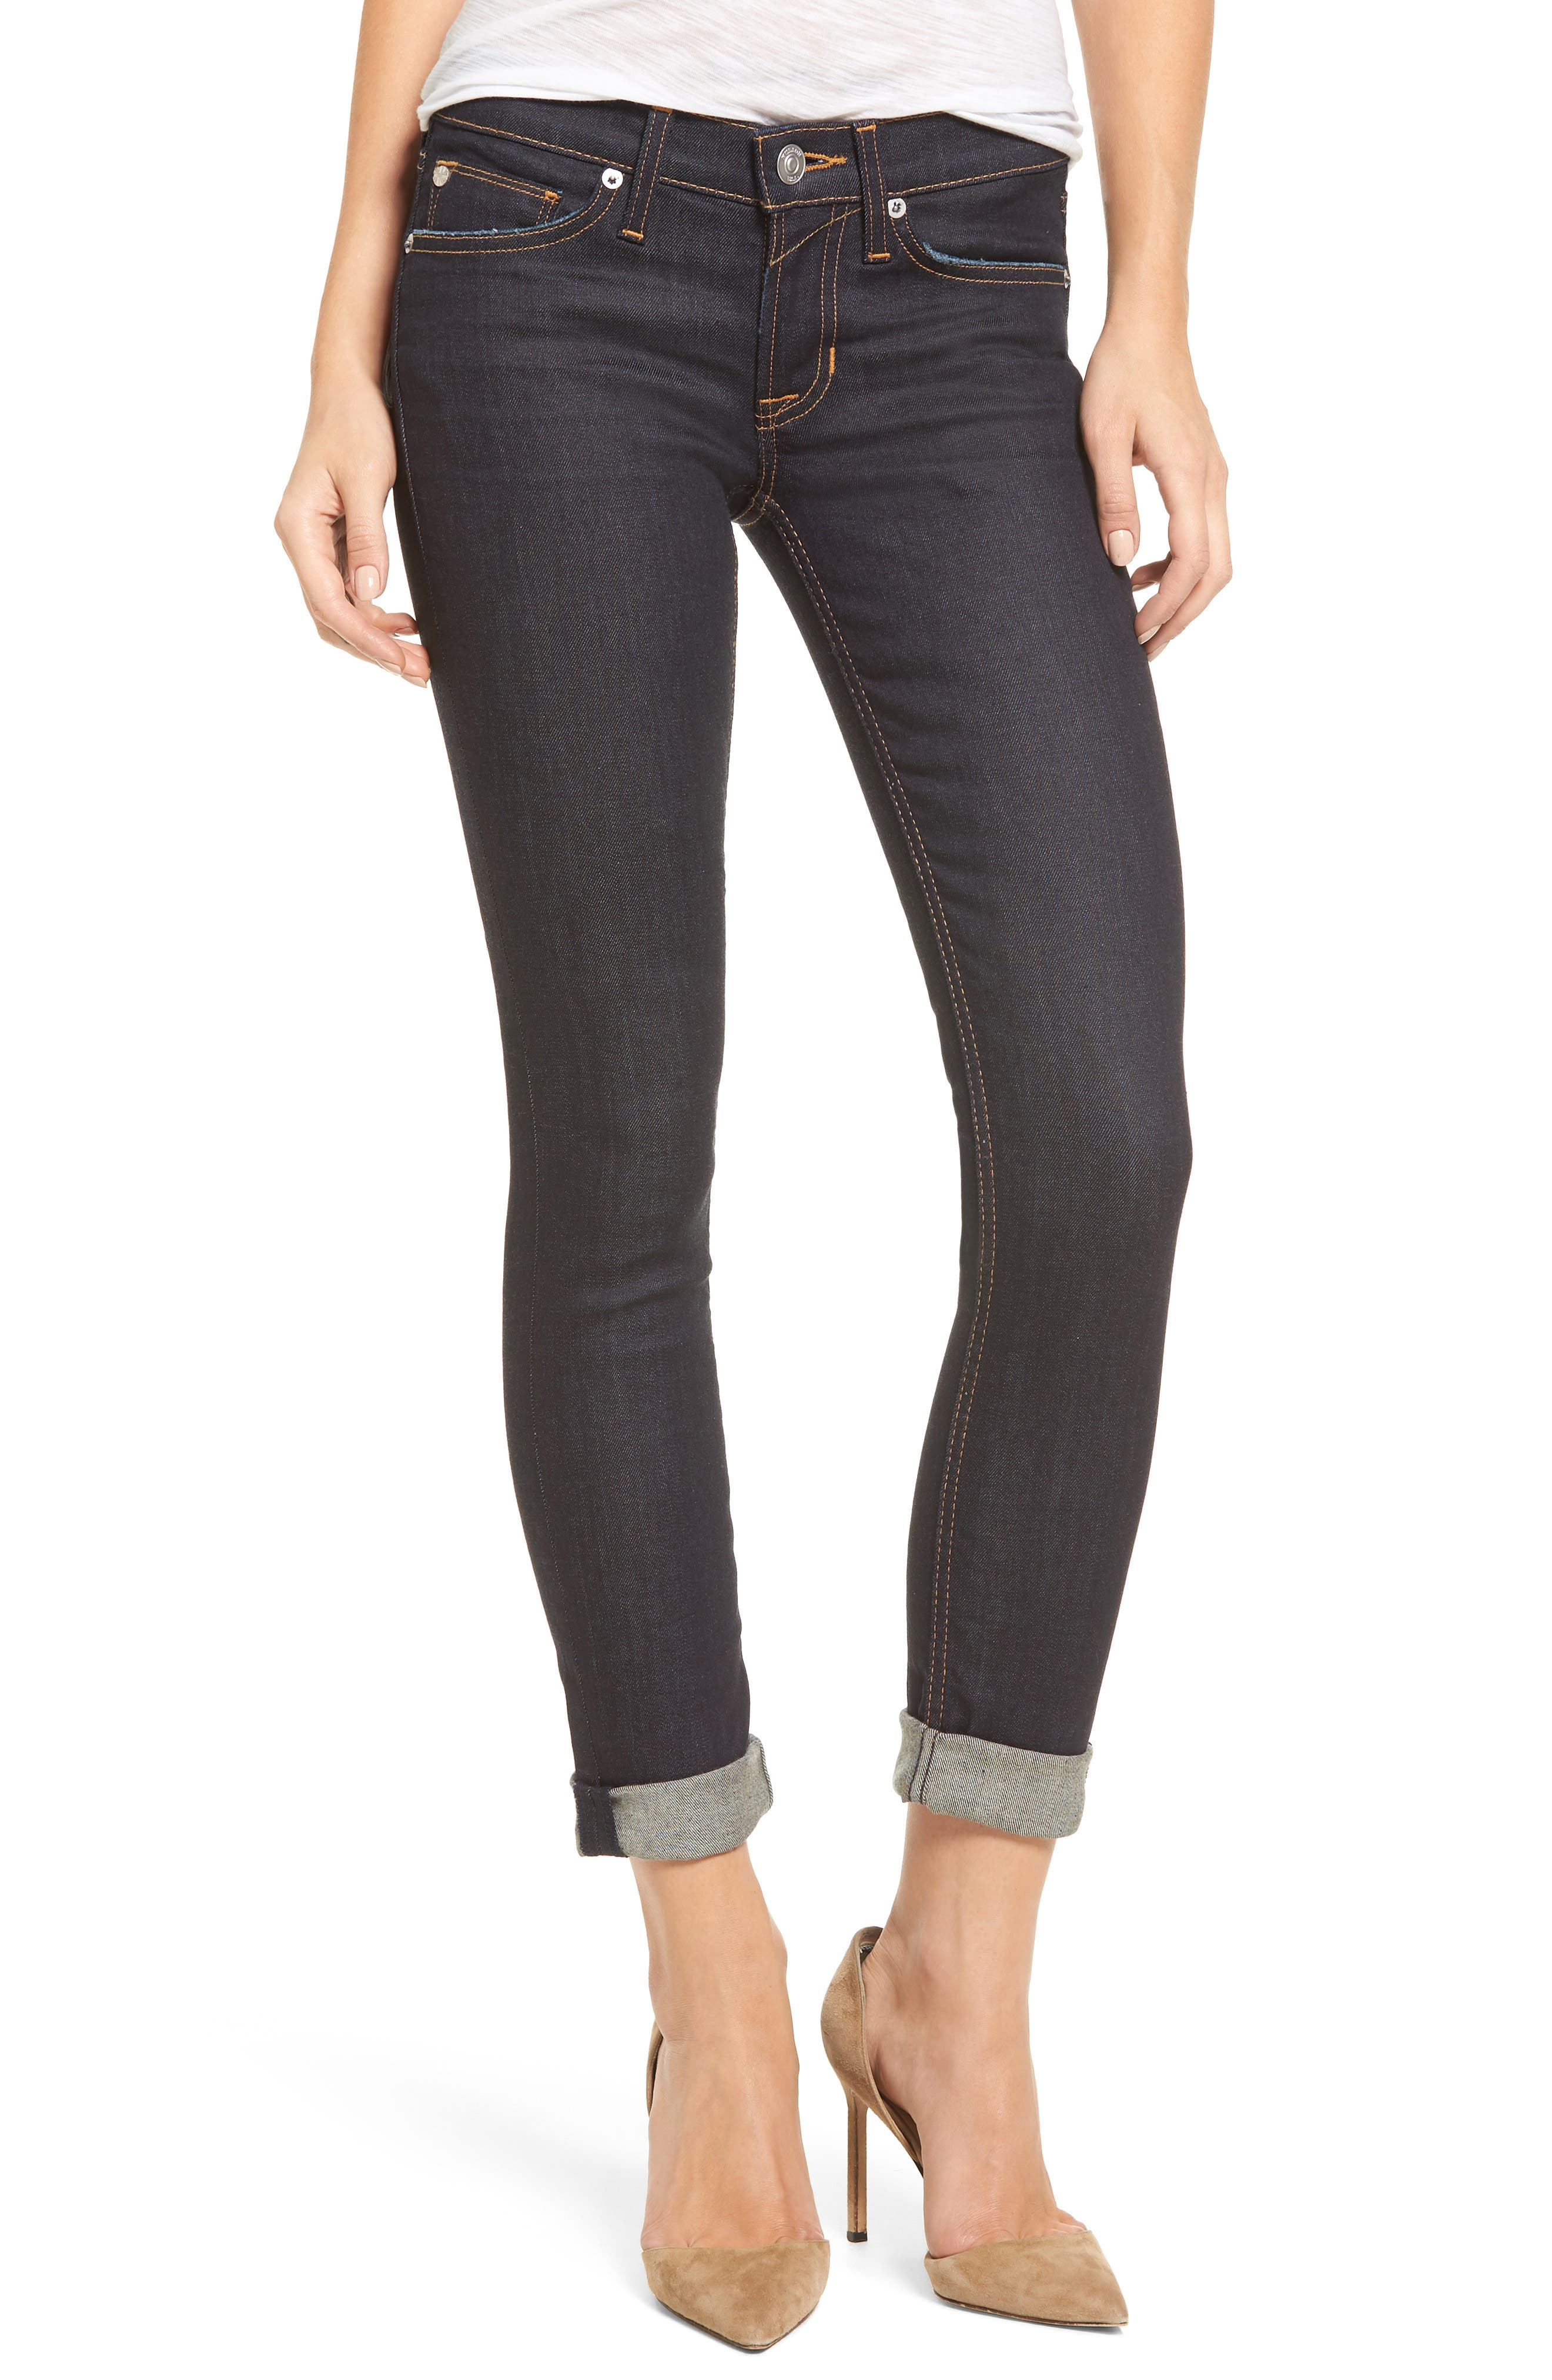 Alternate Image 1 Selected - Hudson Jeans Tally Crop Skinny Jeans (Contender)